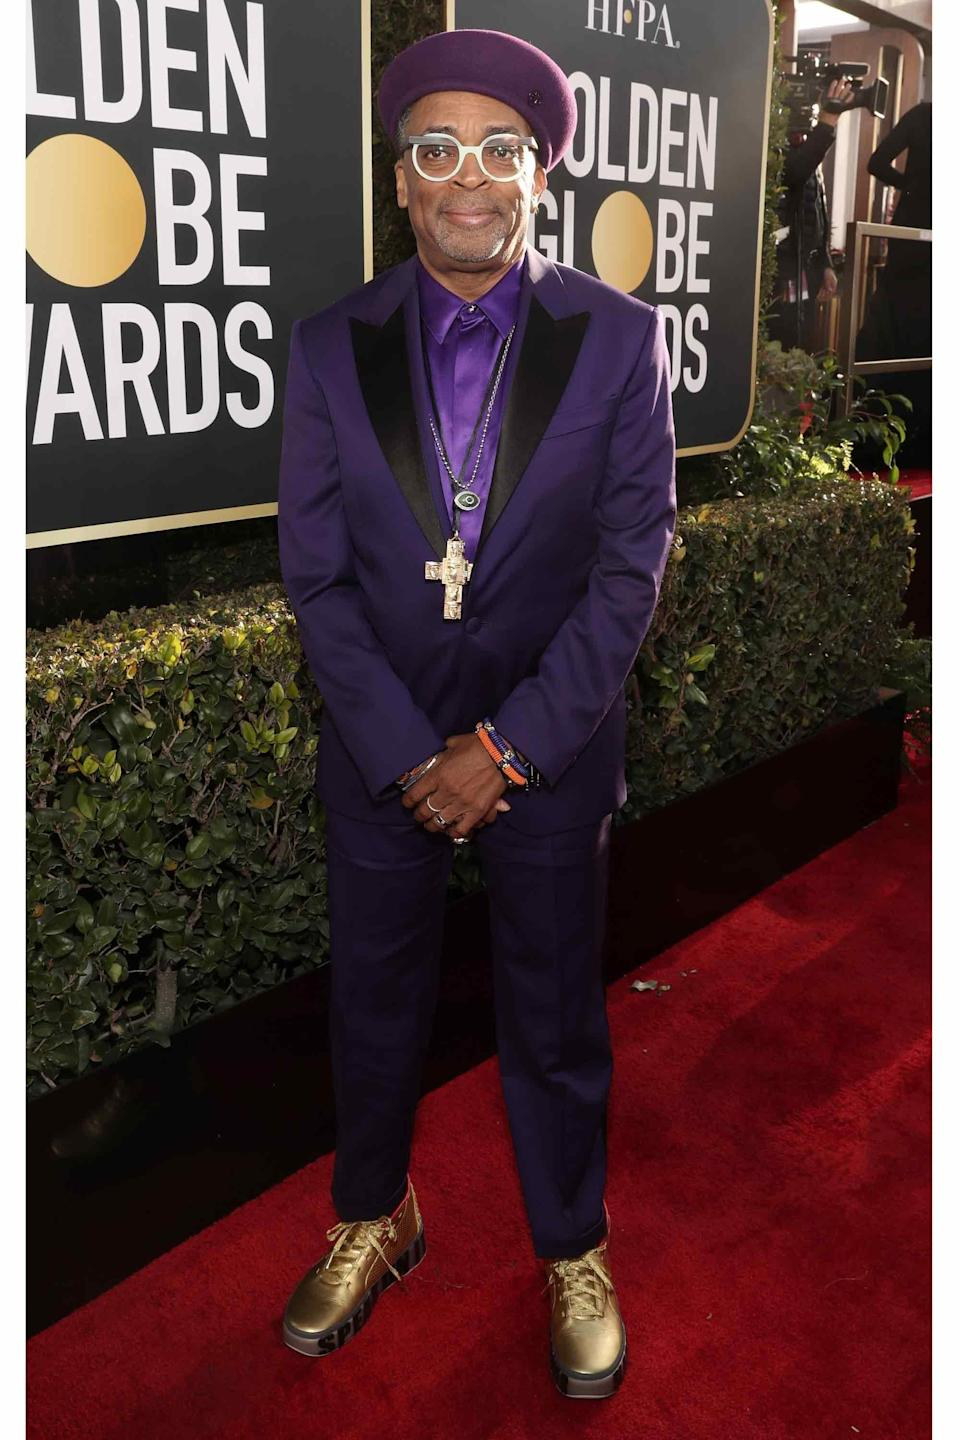 You know how you know Spike Lee has true god-level personal style? He'd definitely wear this to grab a carton of milk at the deli.